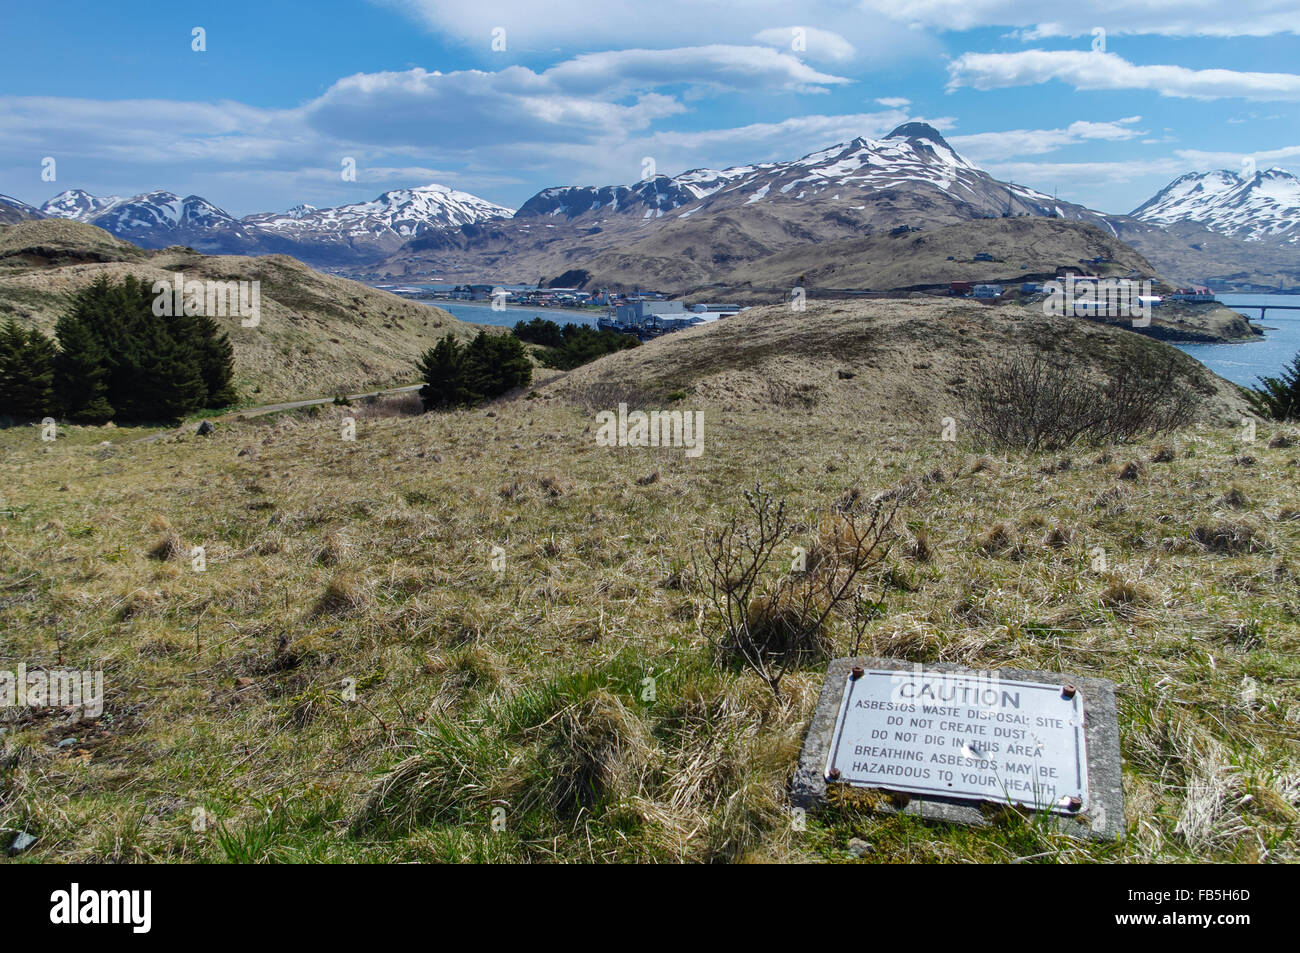 Alaskan landscape with sign reading 'Caution: Asbestos waste disposal site'. Dutch Harbor, Unalaska, AK, - Stock Image